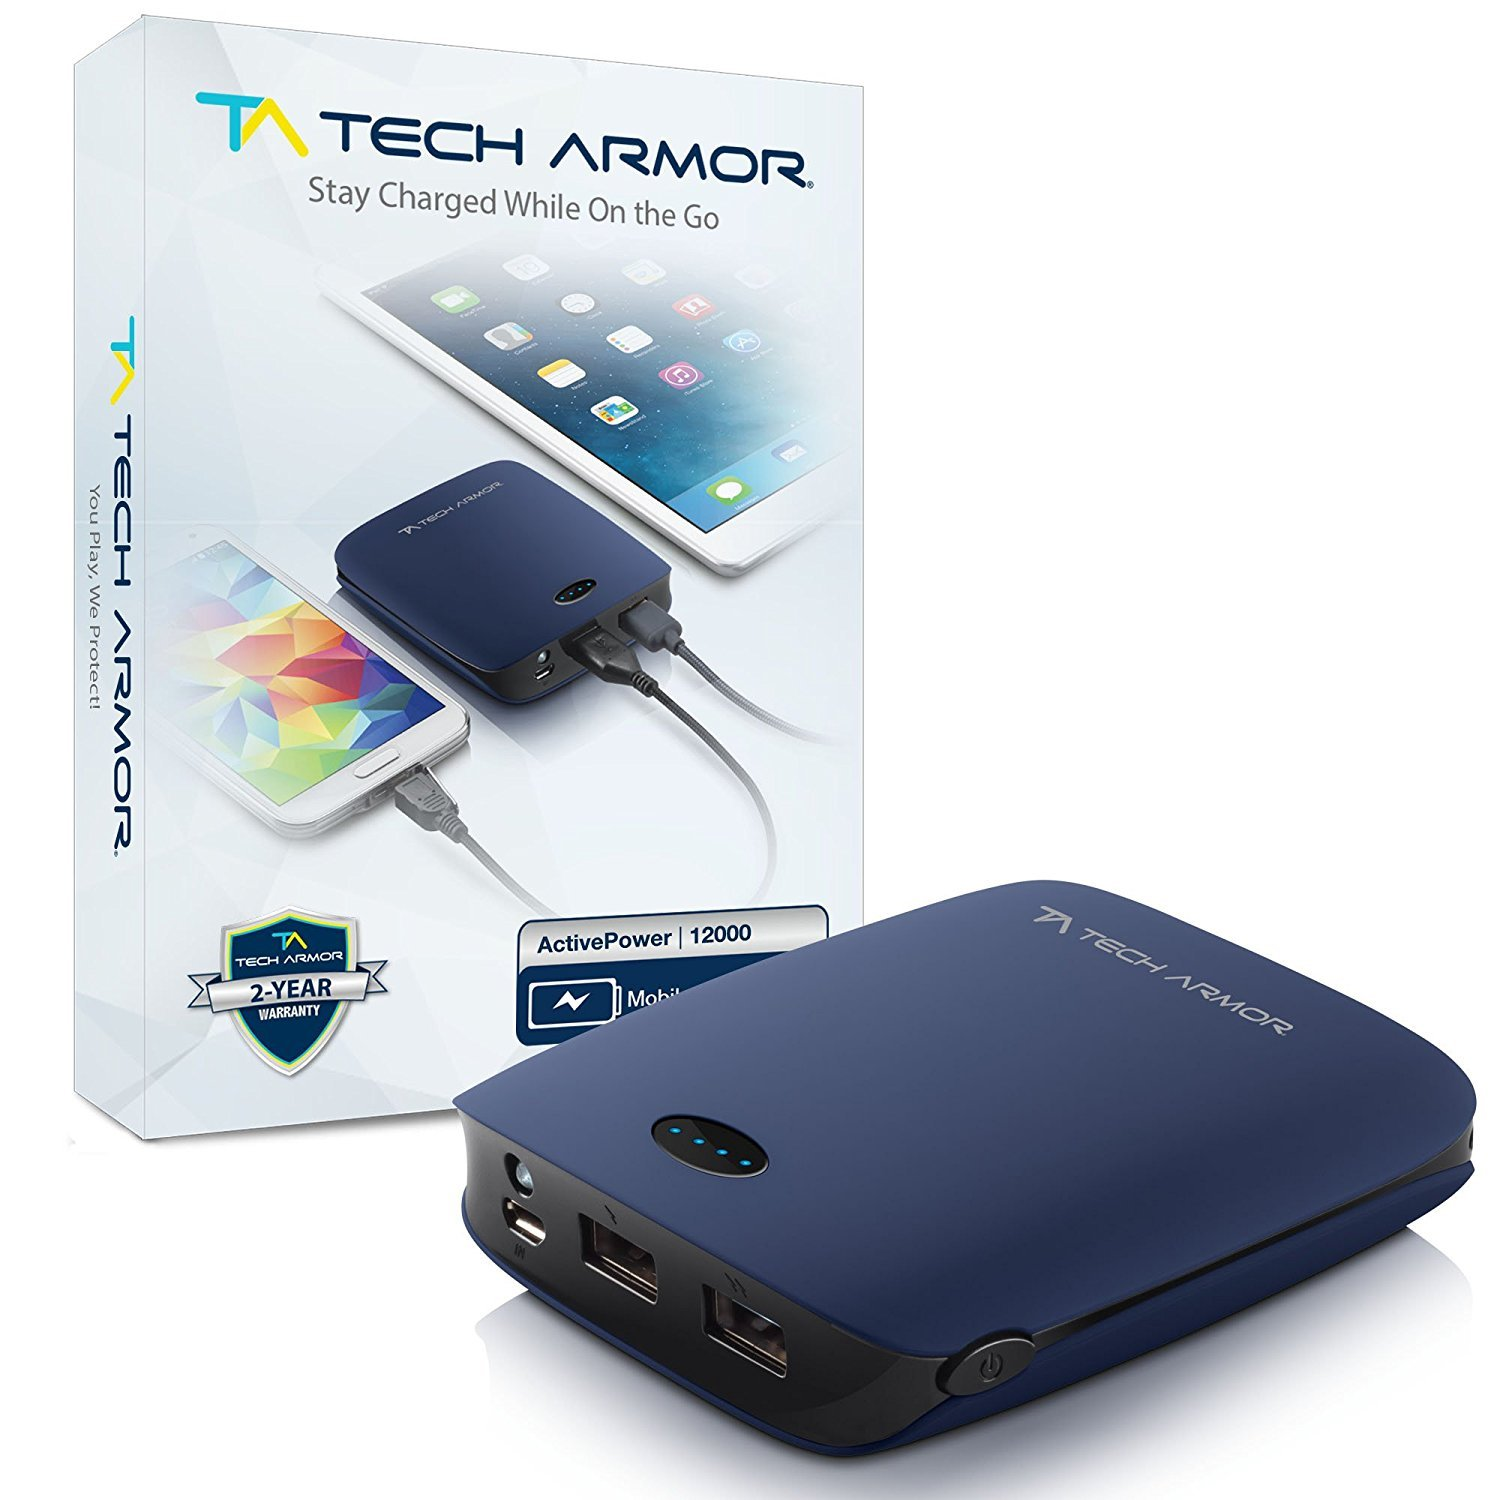 Tech Armor 12000mAh ActivePower PowerBank by External Battery Portable Dual USB Charger Power Bank - Fast Charging, High Capacity, Ultra Compact